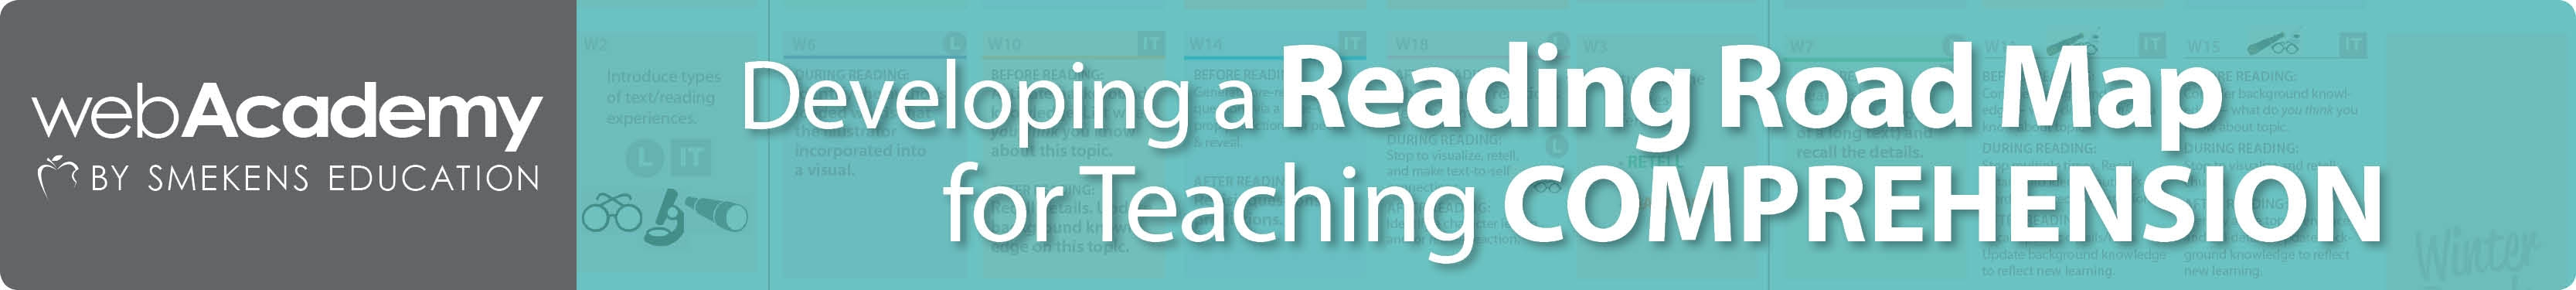 Online Workshop: Developing a Reading Road Map for Teaching